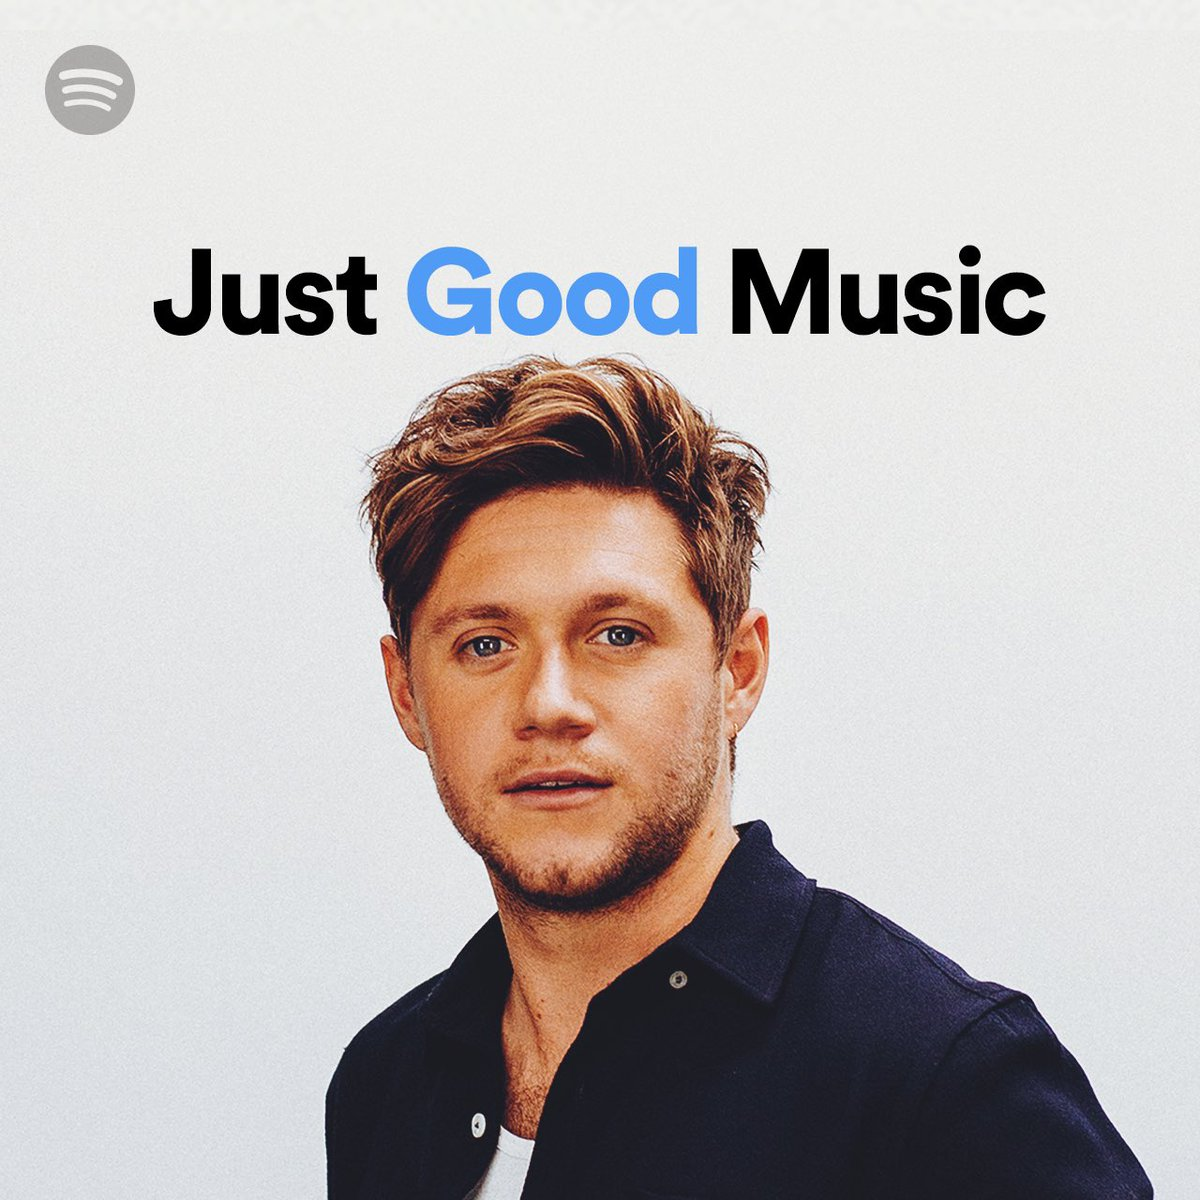 Thanks for the cover of Just Good Music @Spotify !